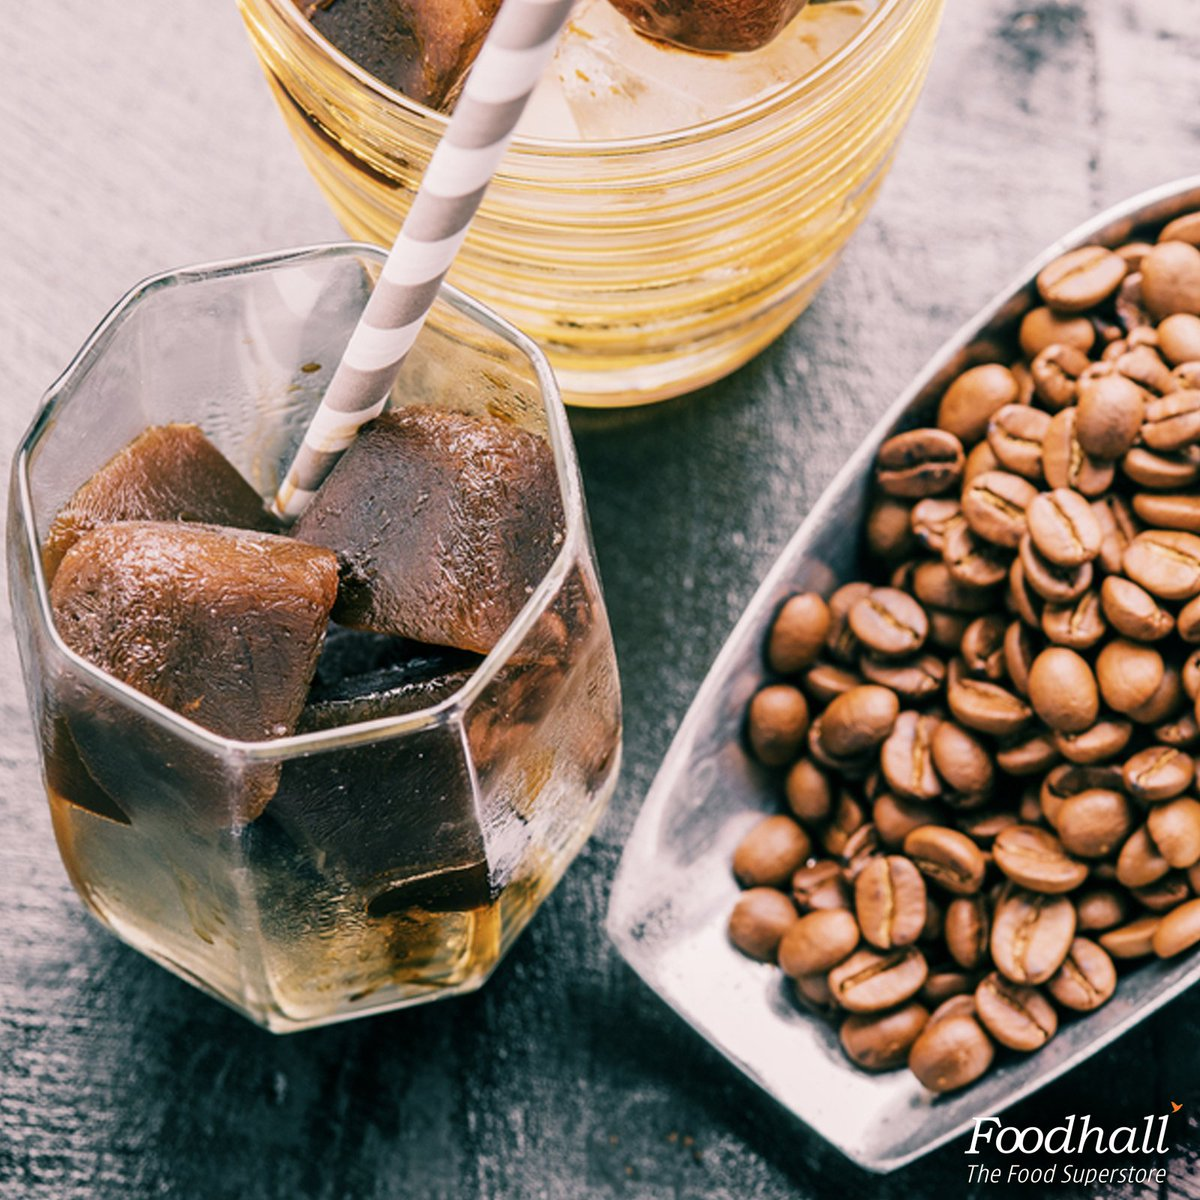 This #summer treat yourself to homemade iced mocha by throwing in coffee ice cubes in a glass of milk & cocoa powder https://t.co/czPPCW68Fw